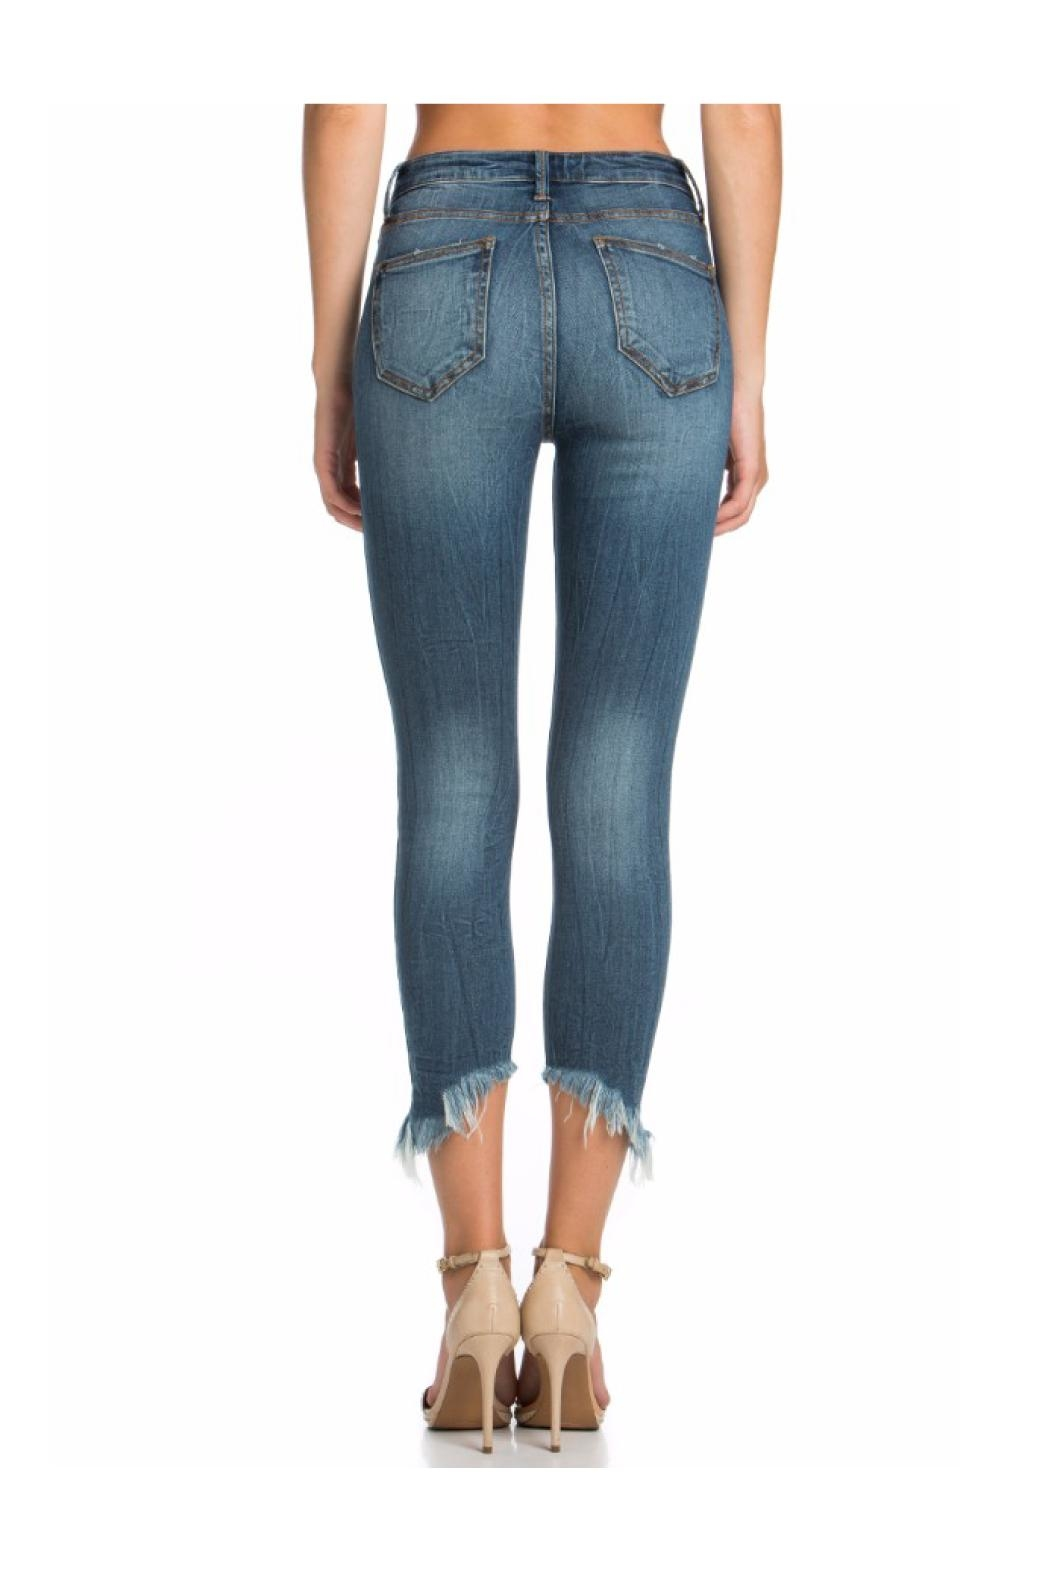 Polly & Esther High Waisted Jeans - Front Full Image